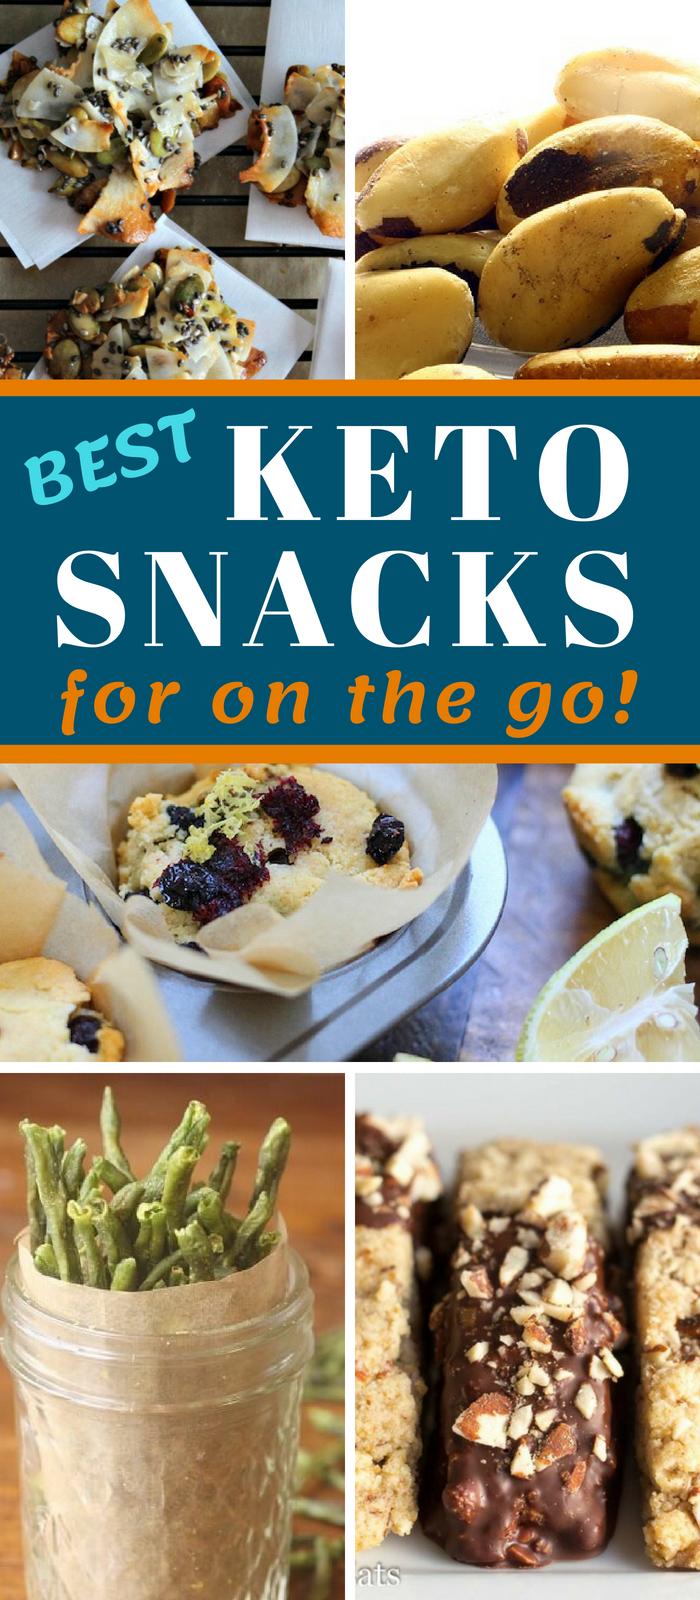 BEST KETO SNACKS FOR ON THE GO